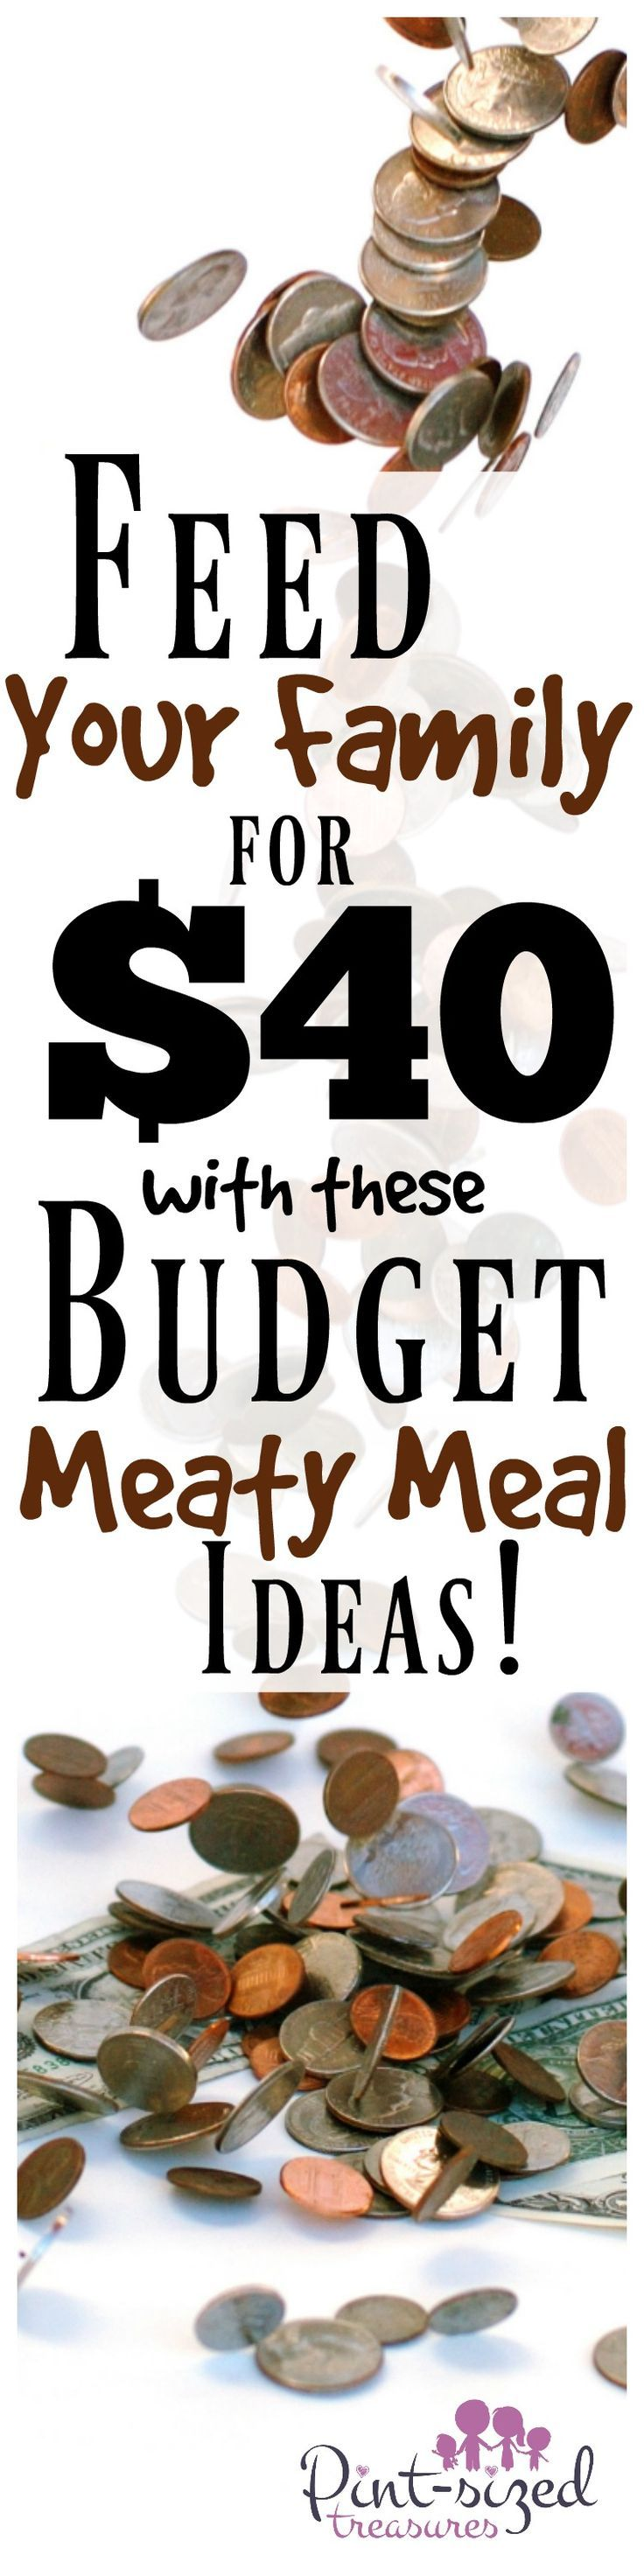 Feed your family for $40 with meaty meals? Yes you can! Don't let tight budgets get you stressed in your meal planning! Check out these amazing budget meaty meal ideas that will make your family's taste buds tingle --- on the cheap! Learn how to prepare a